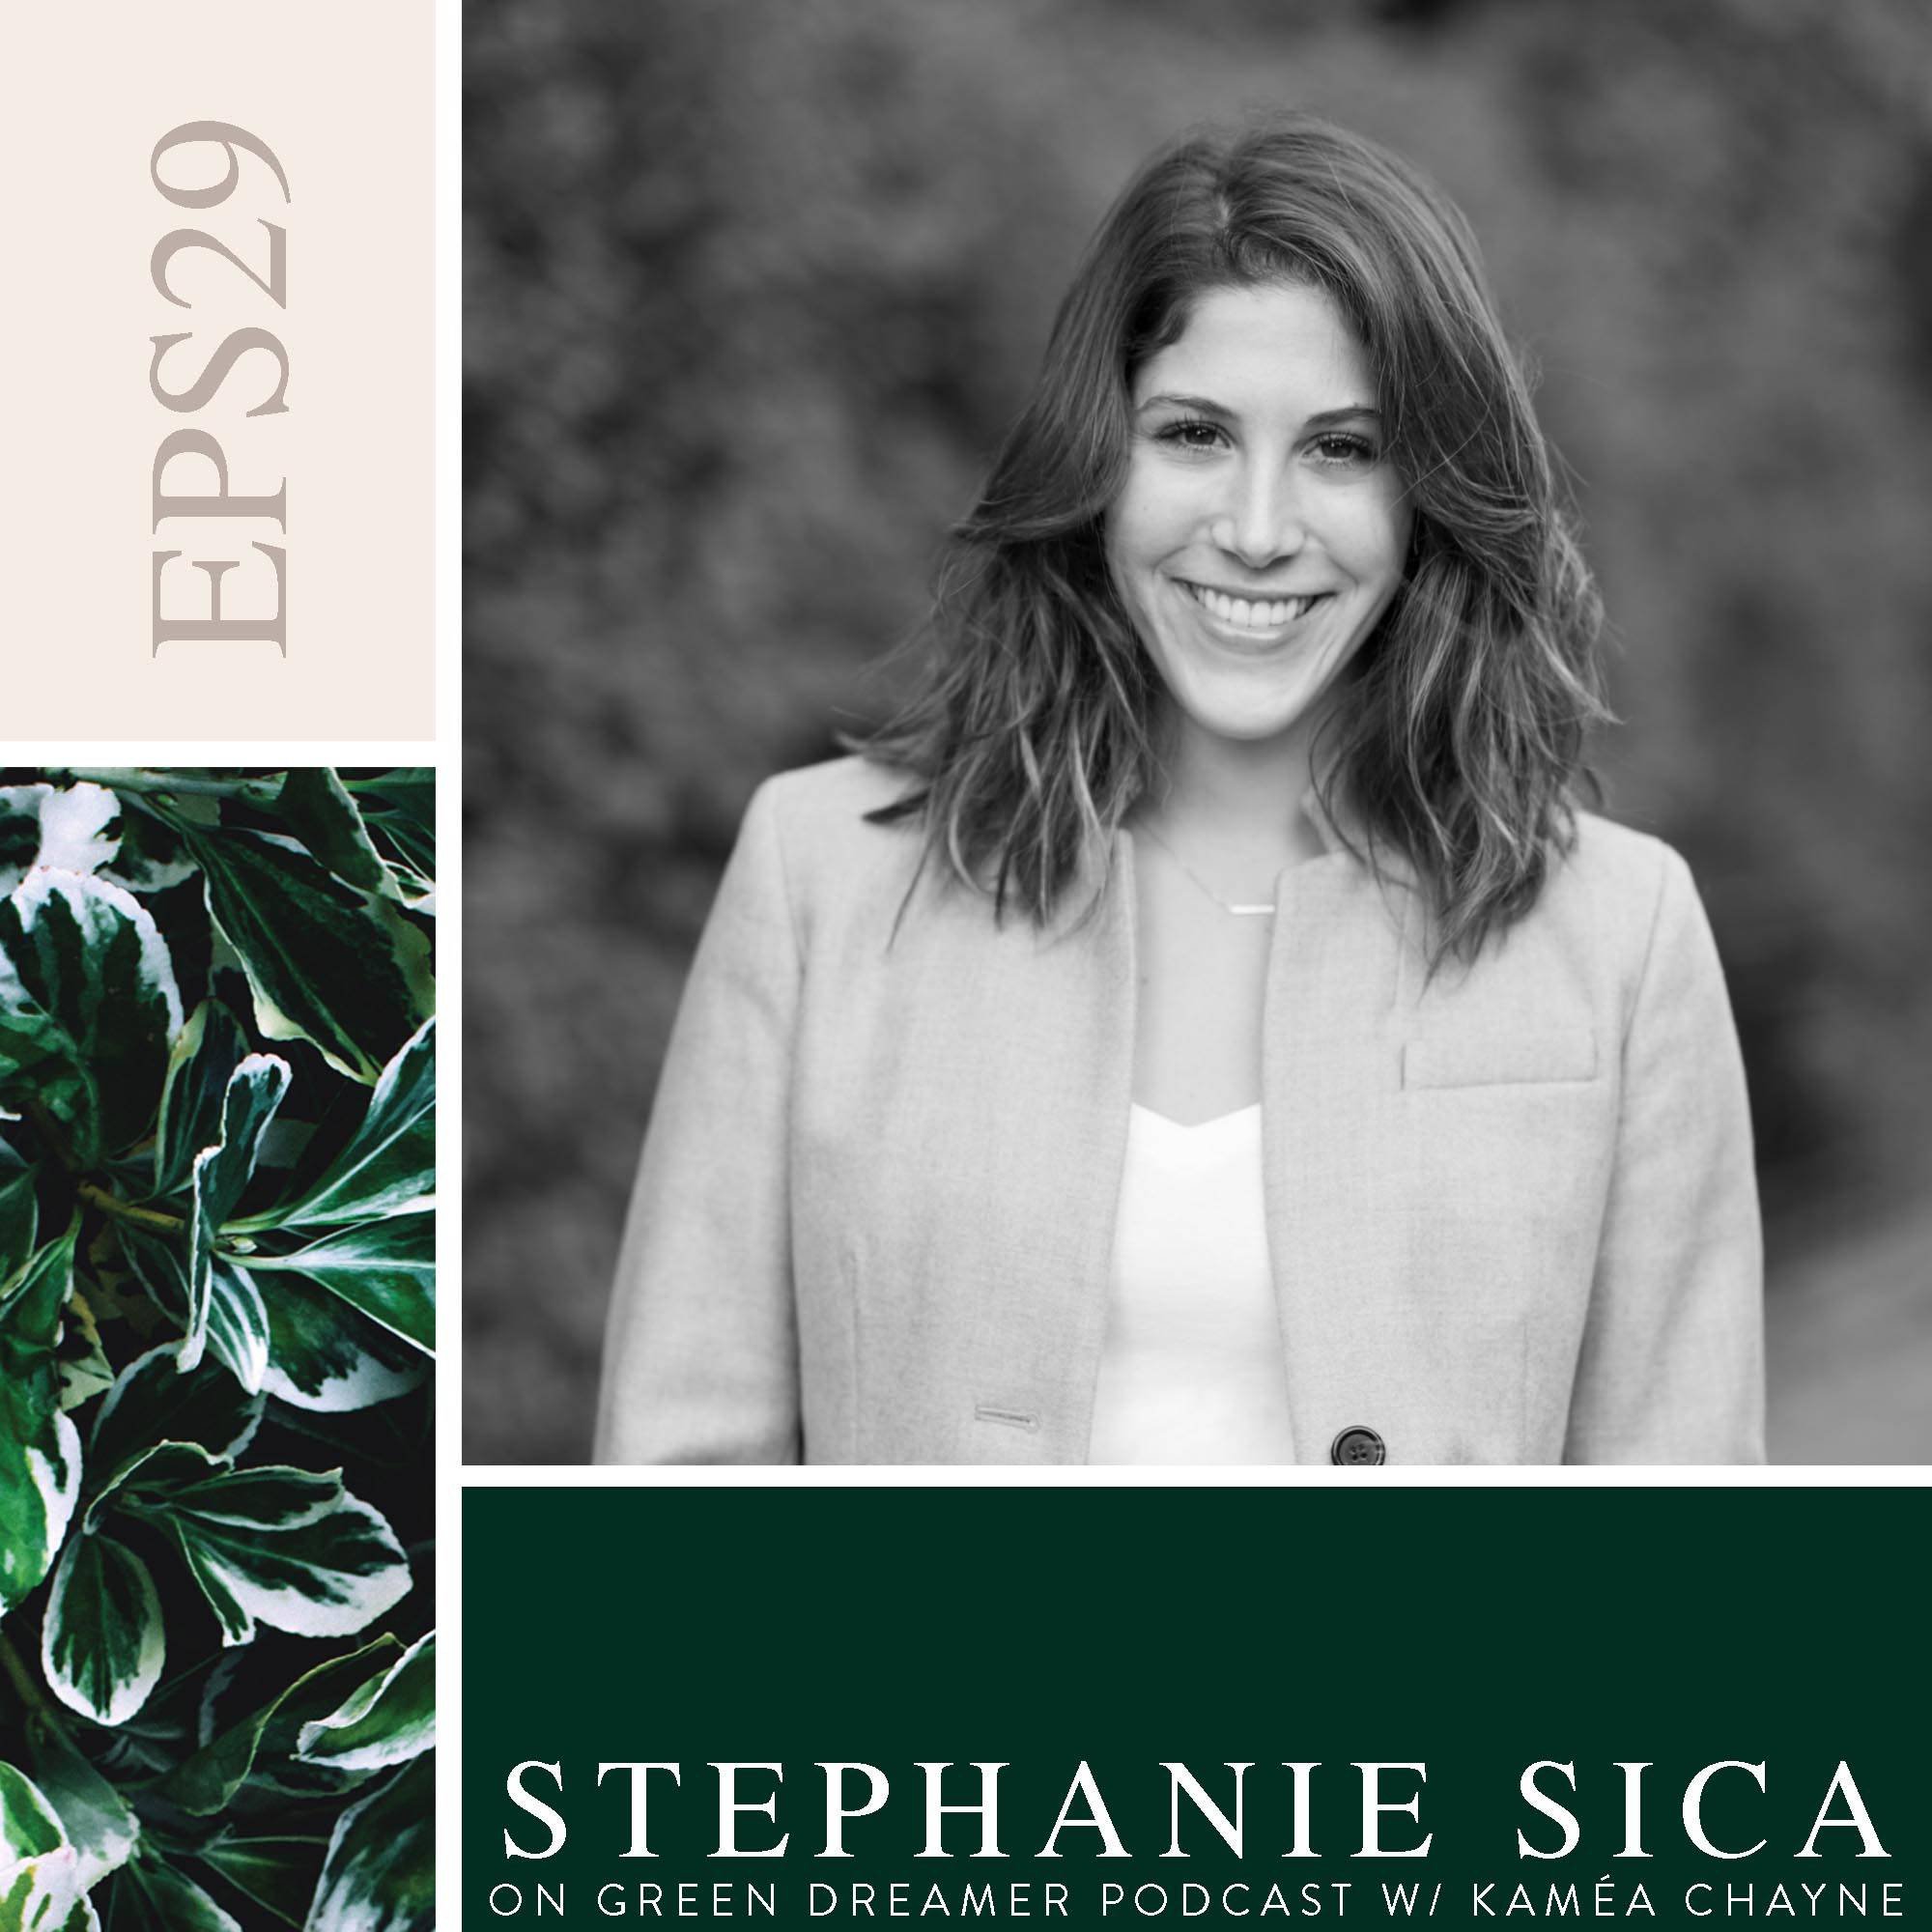 29) BW Stephanie-Sica-Orchard-and-Broome-talks-sustainability-on-Green-Dreamer-Podcast-with-Kaméa-Chayne.jpg